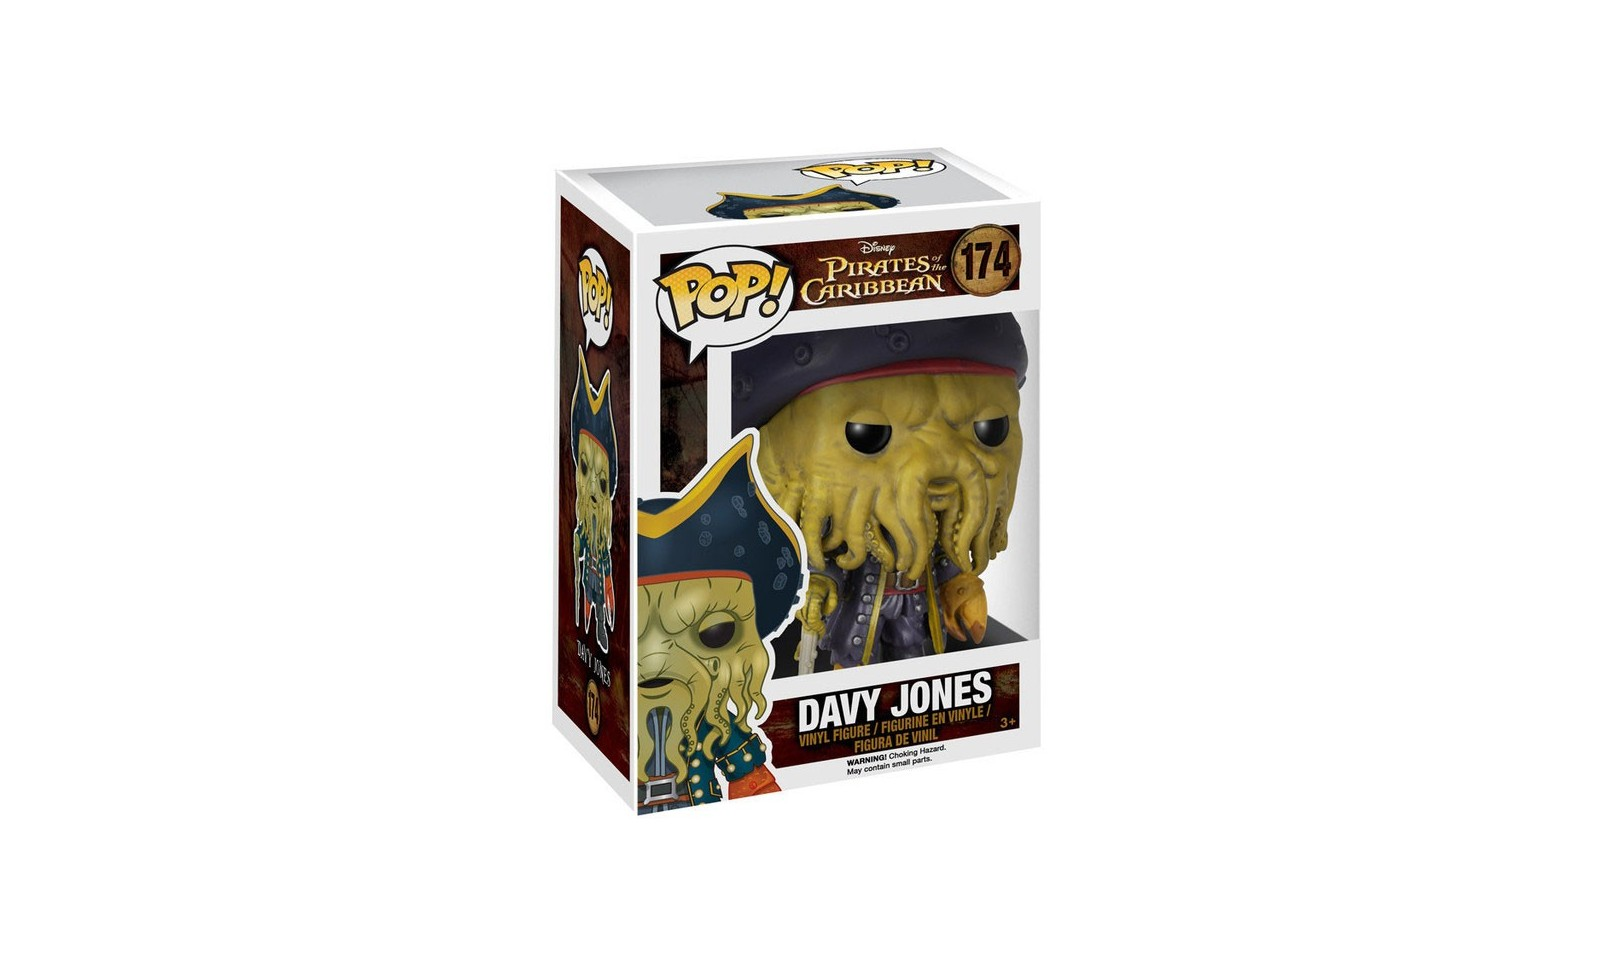 des caraibes le secret du coffre maudit figurine pop davy jones 9 cm cin 233 ma